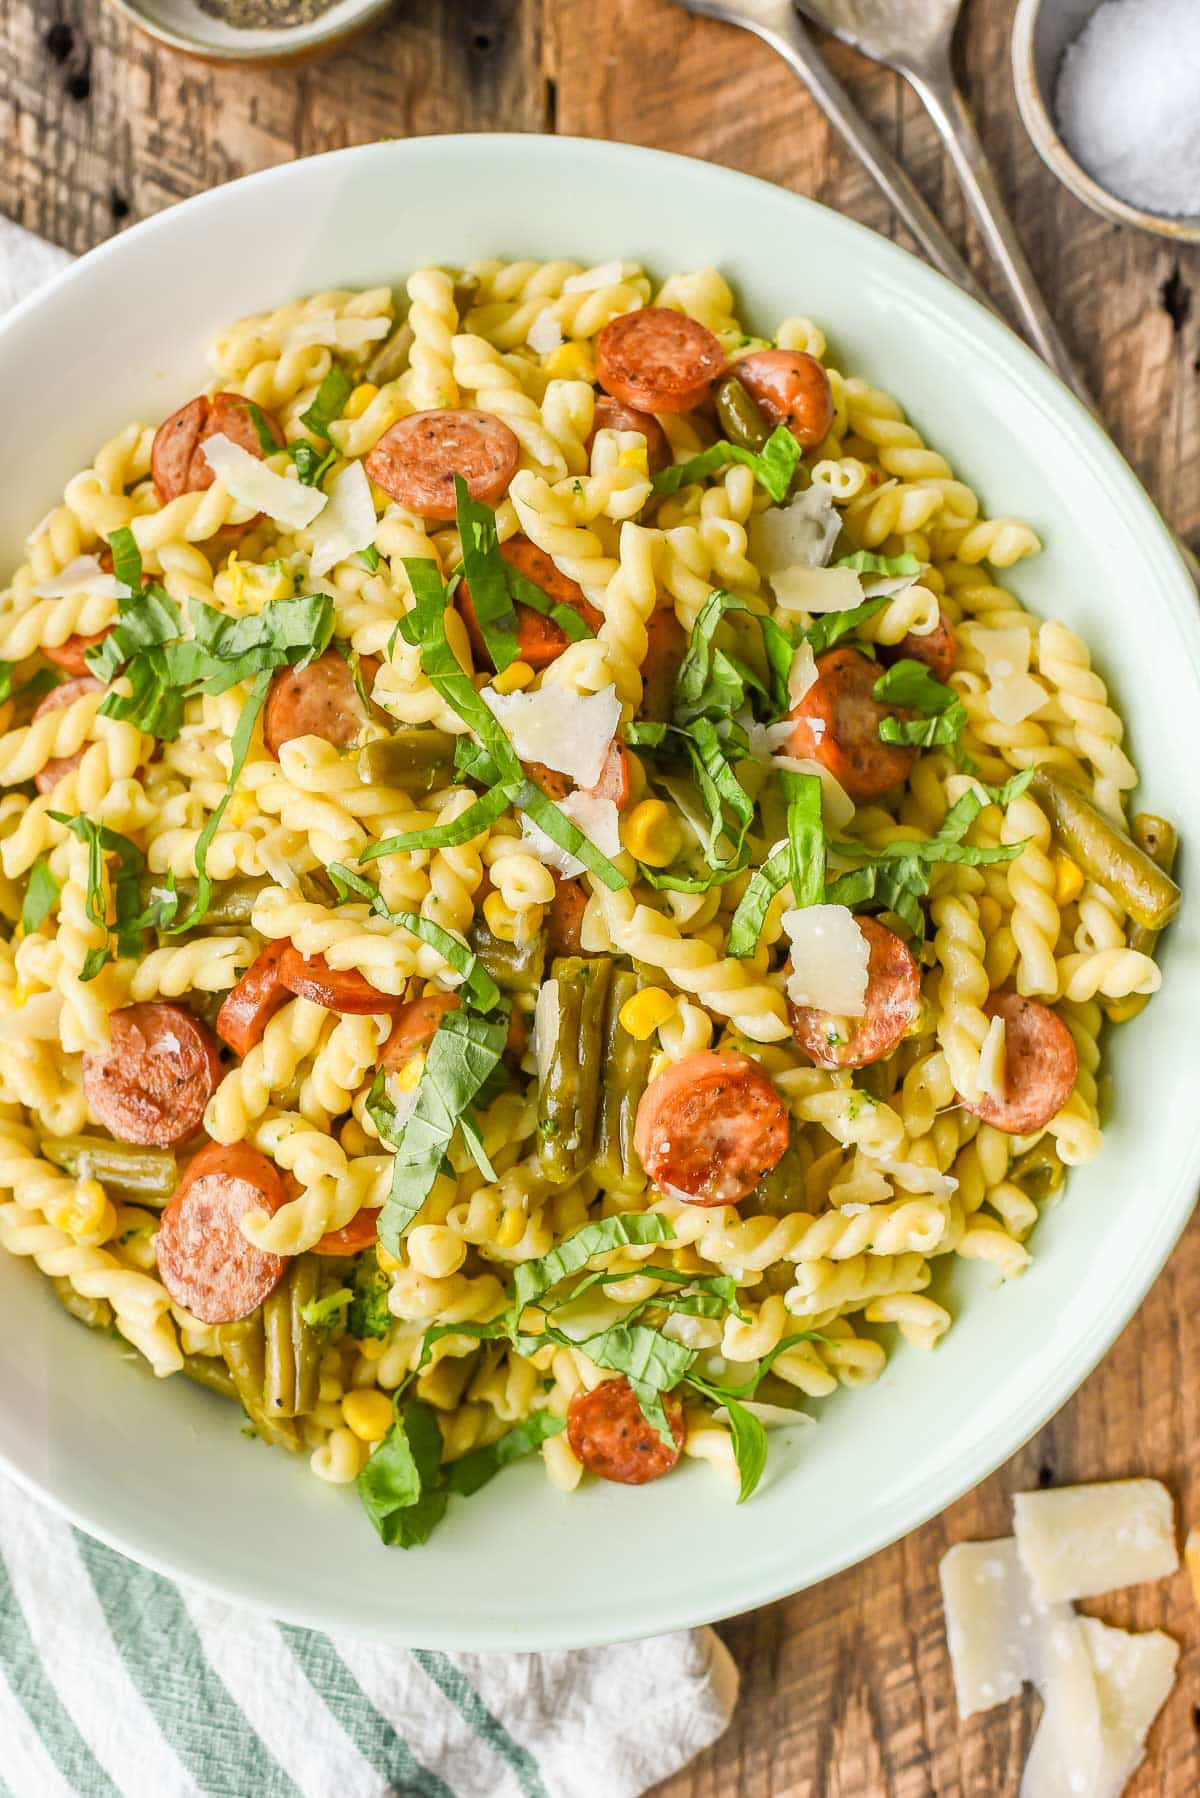 Easy Parmesan Pasta with Chicken Sausage, Green Beans, and Corn